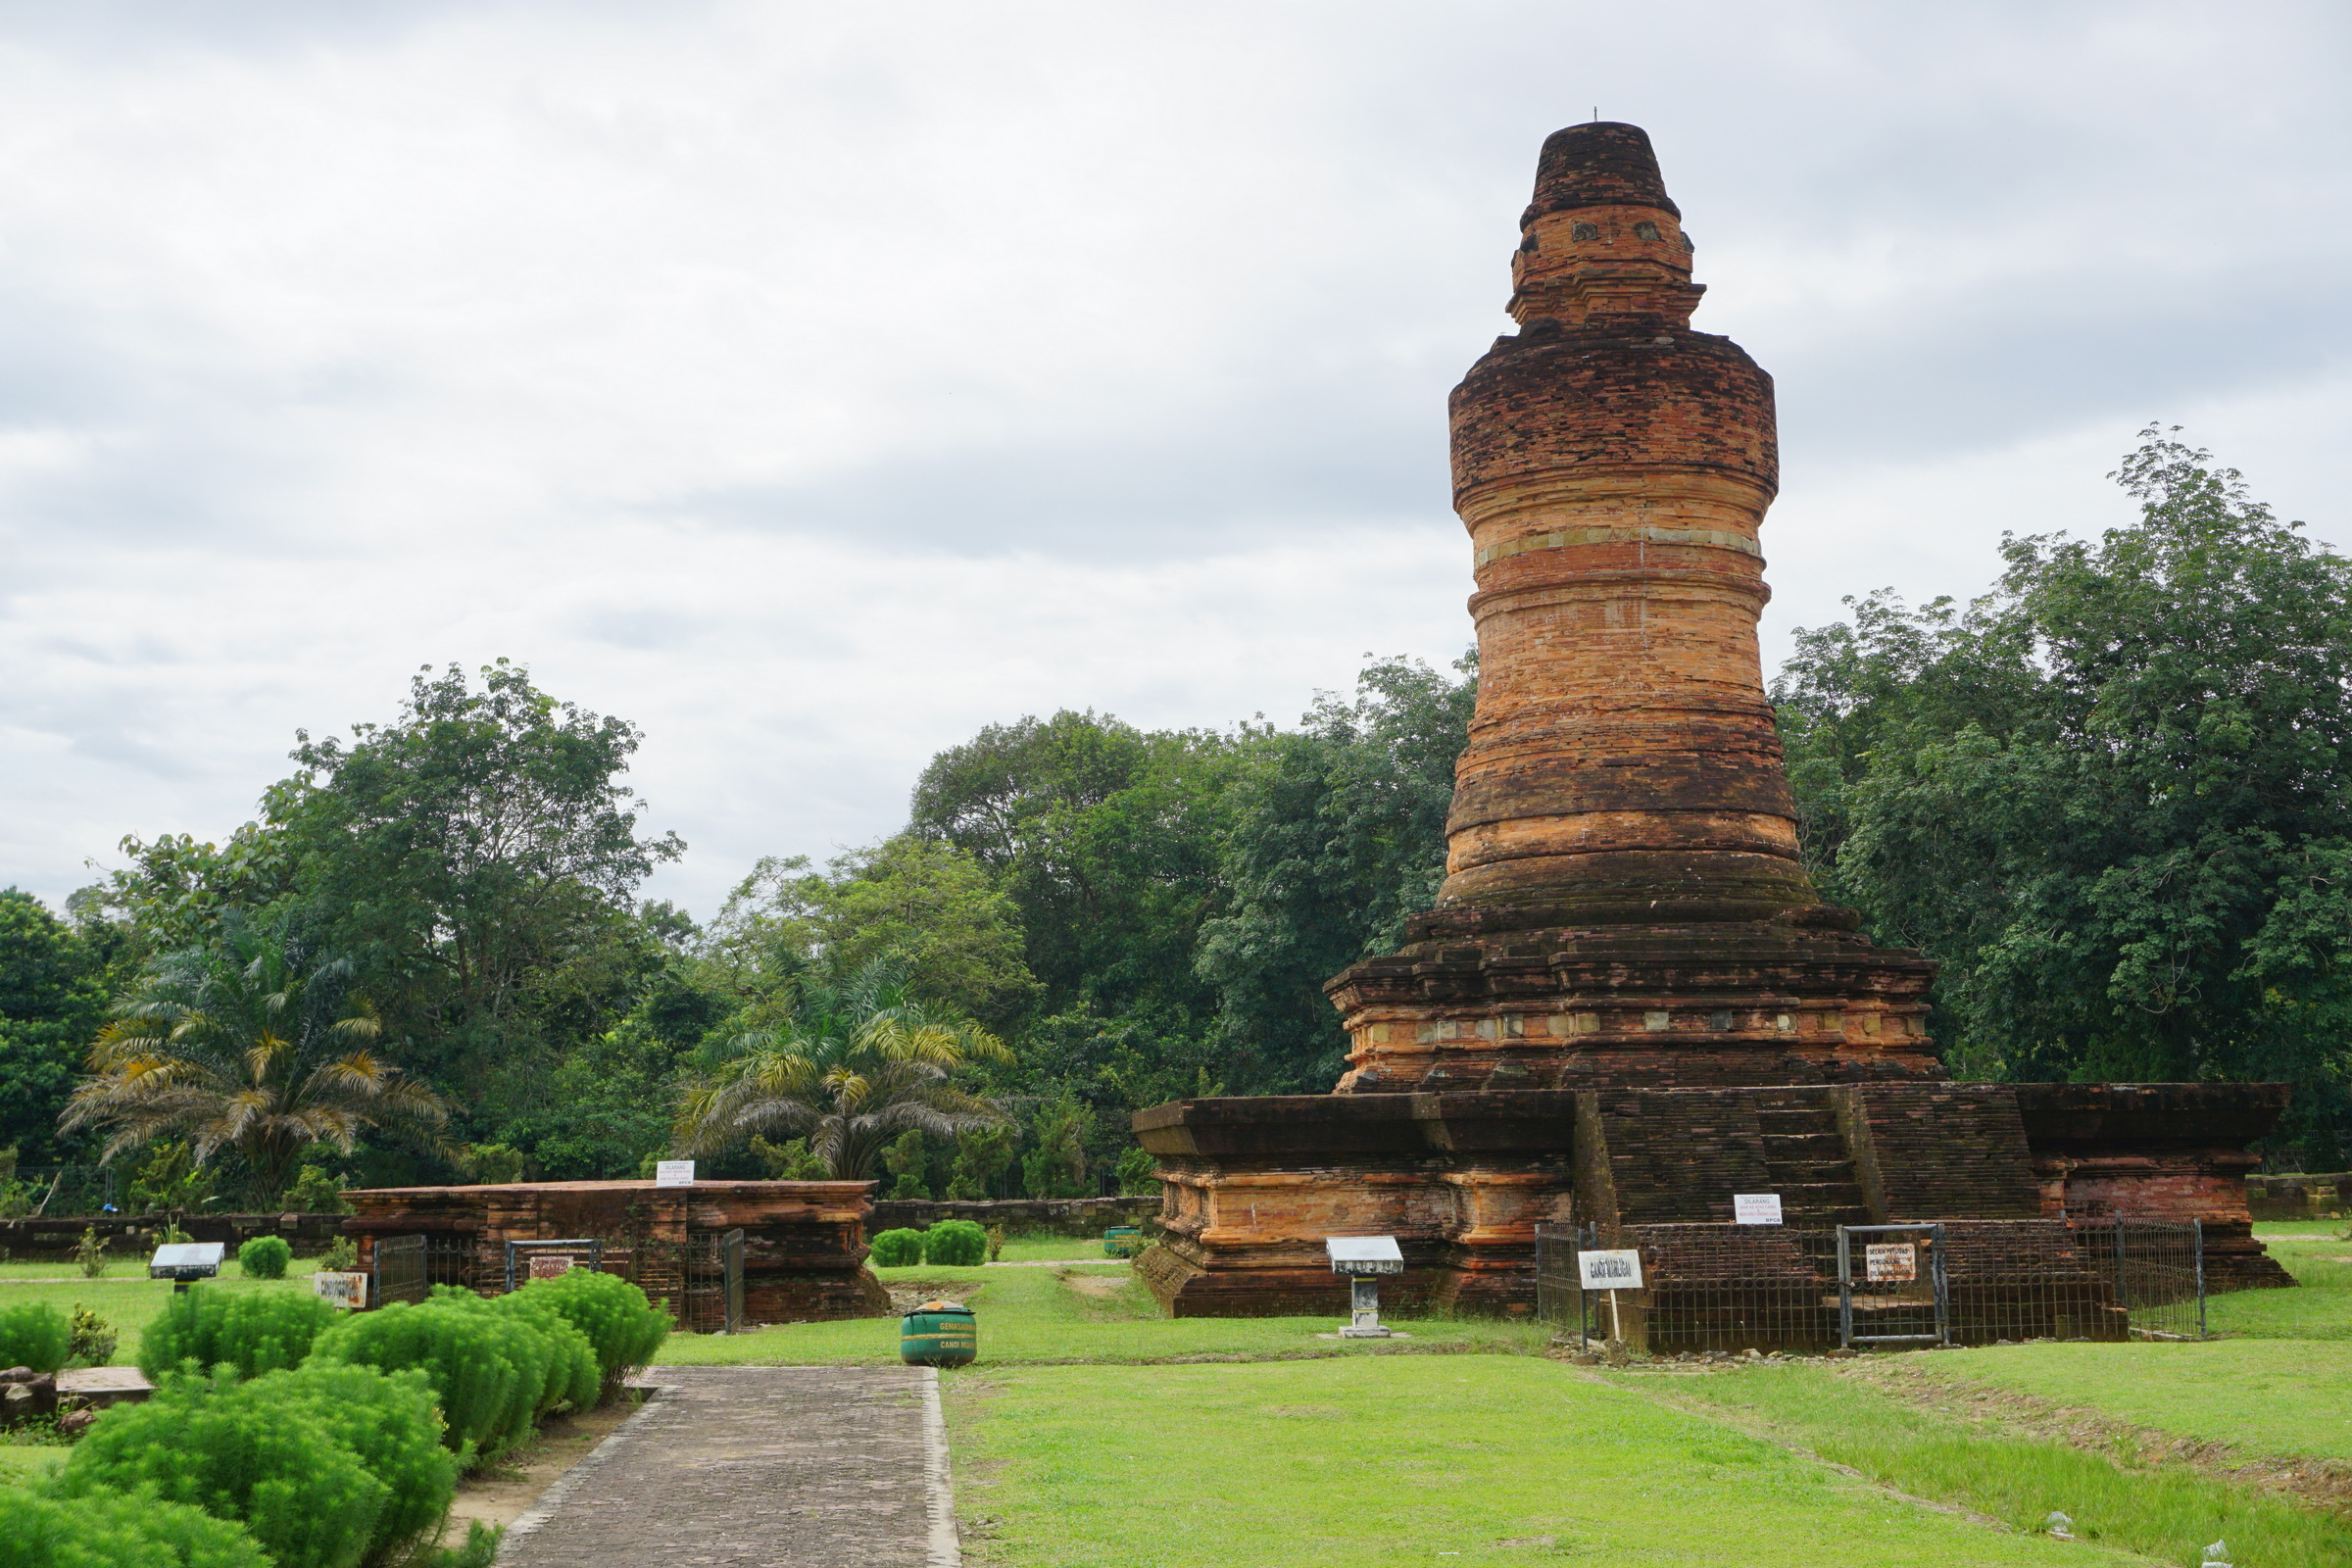 Candi Mahligai, a Tall Stupa-like Building